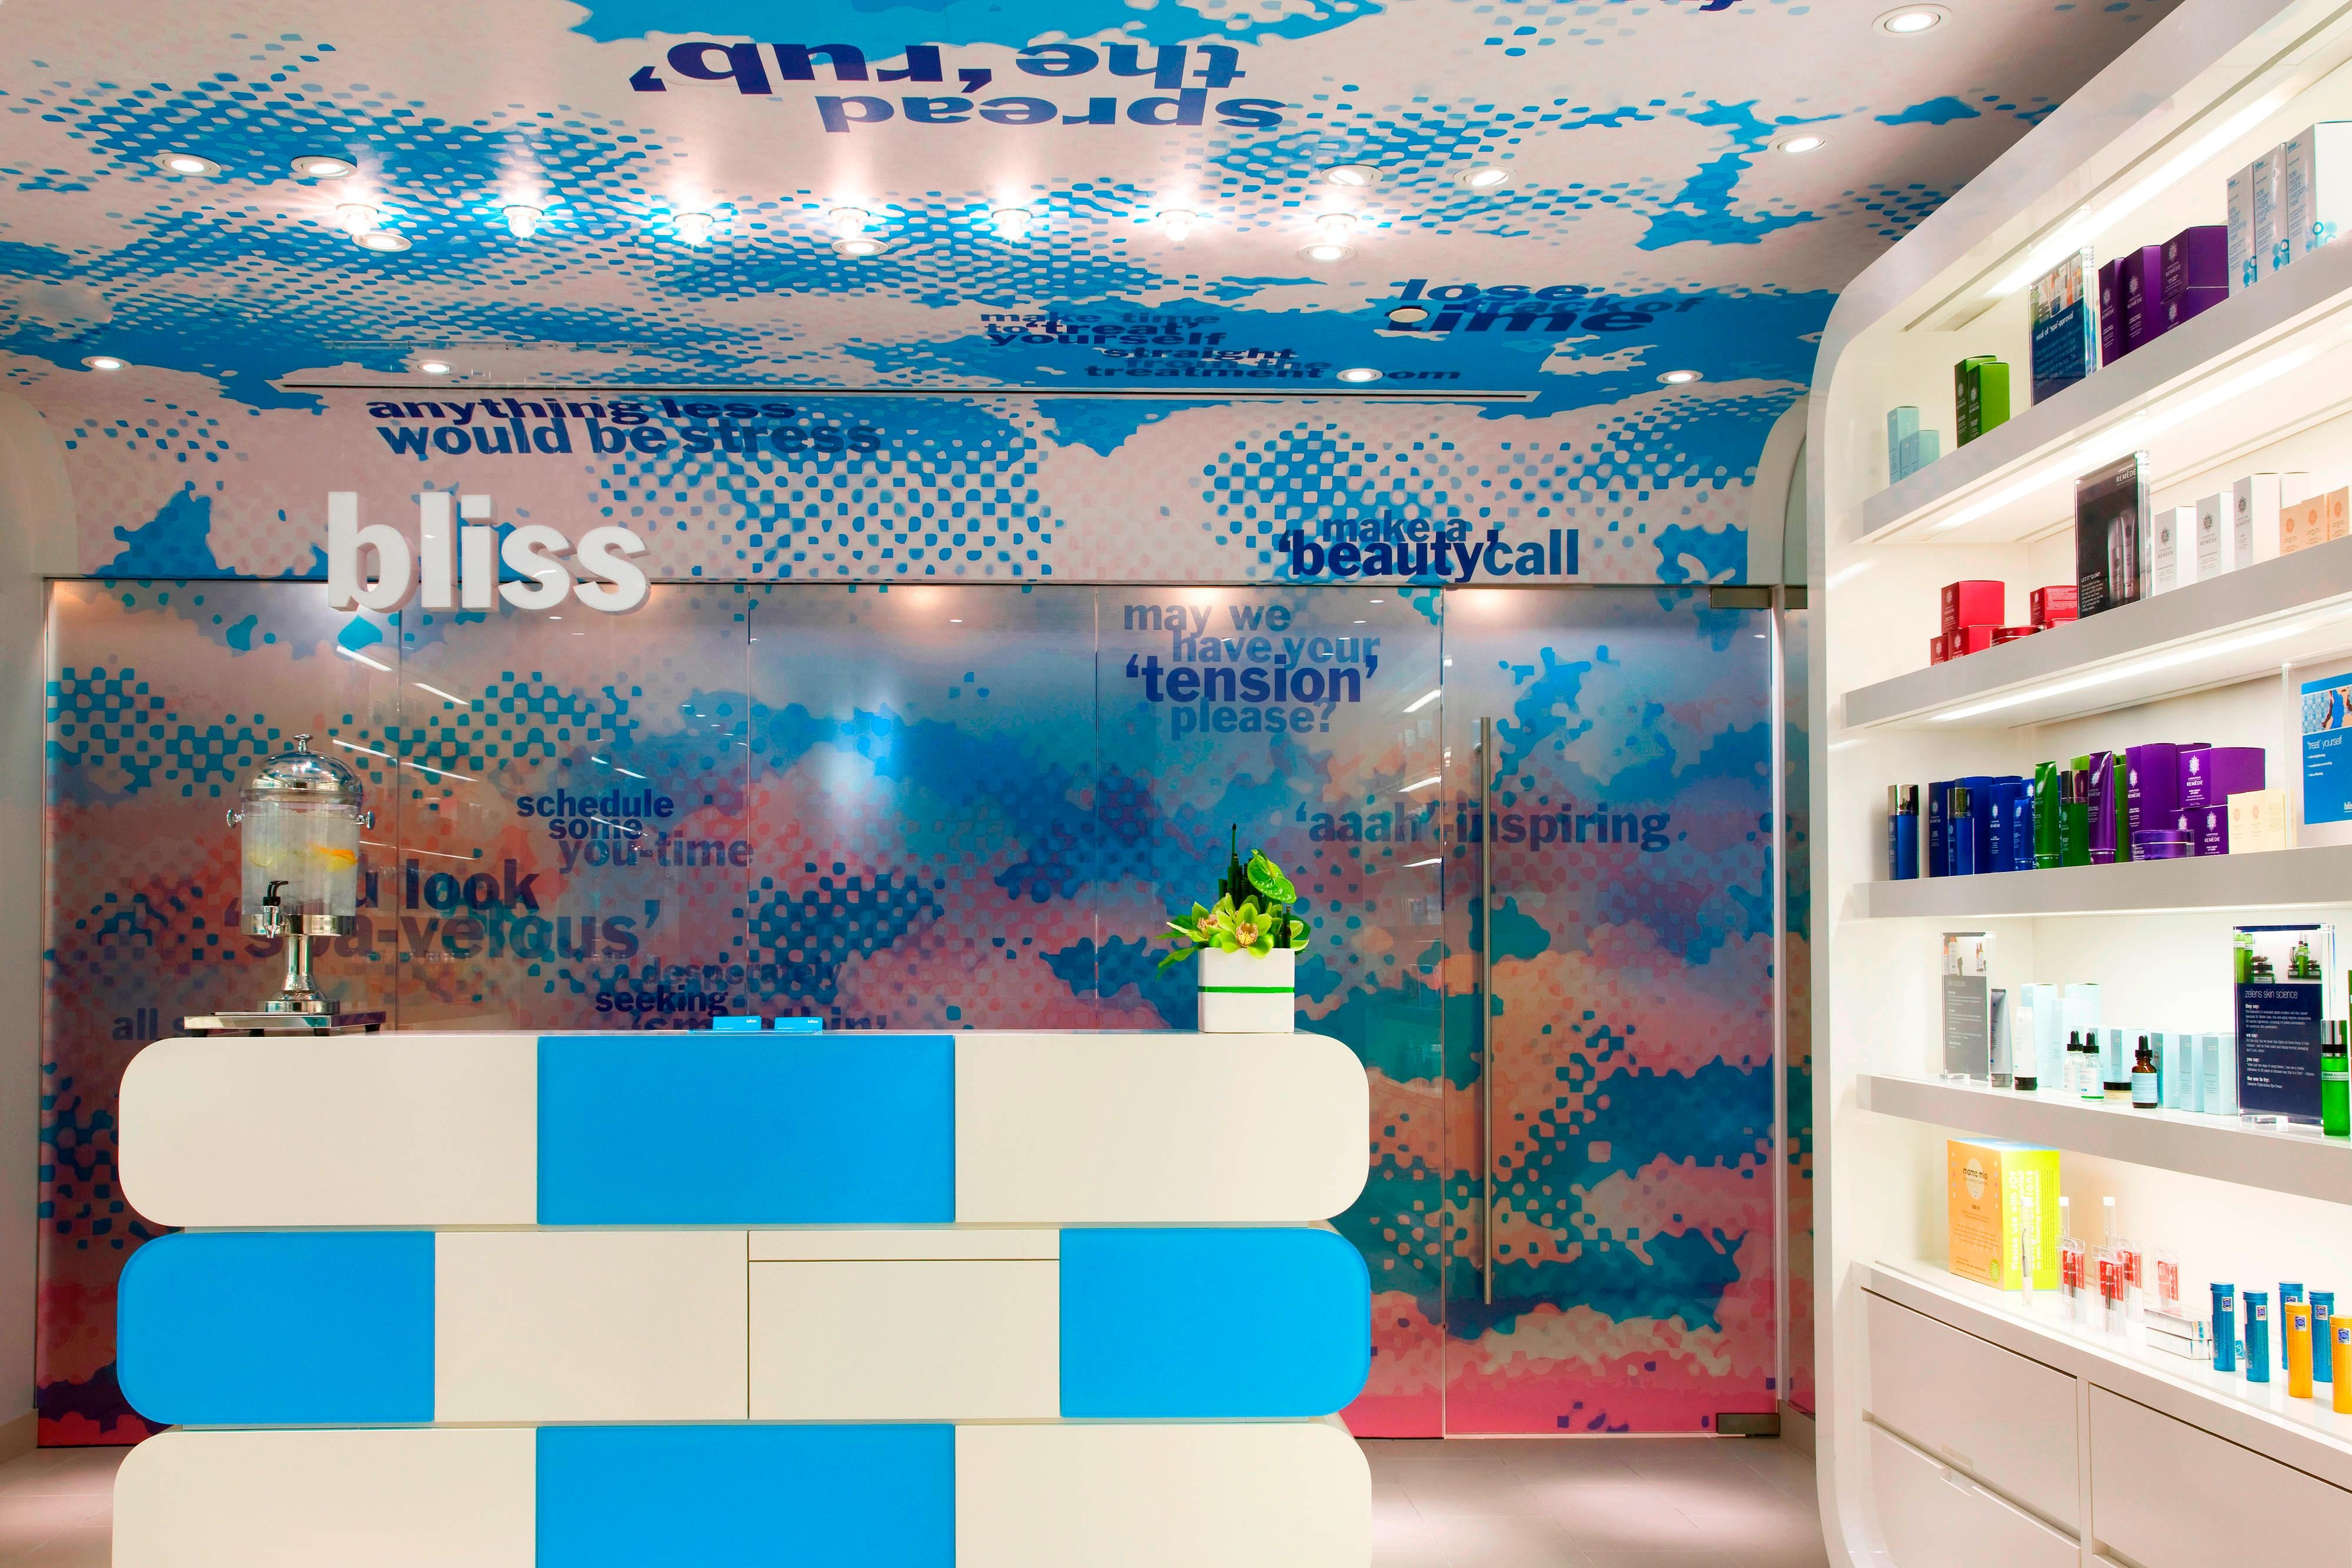 Bliss Welcome Desk & Retail Area